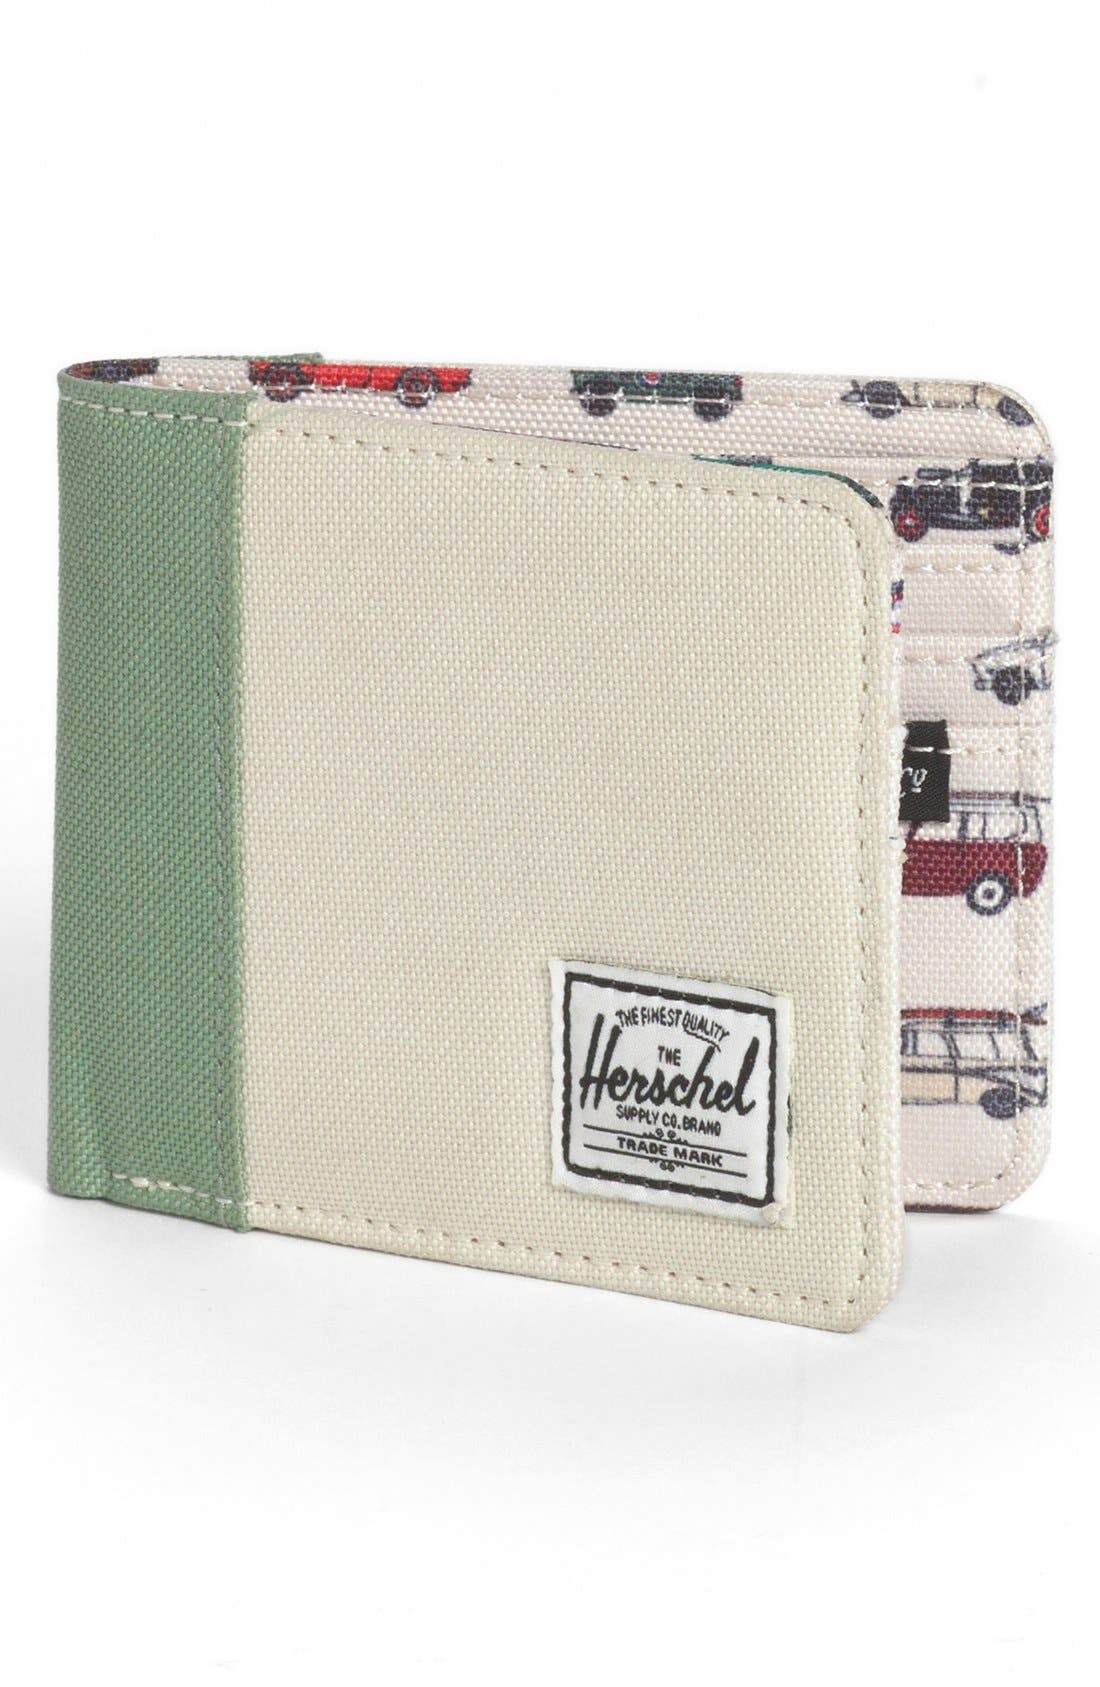 Main Image - Herschel Supply Co. 'Edward - Rad Cars with Rad Surfboards Collection' Wallet